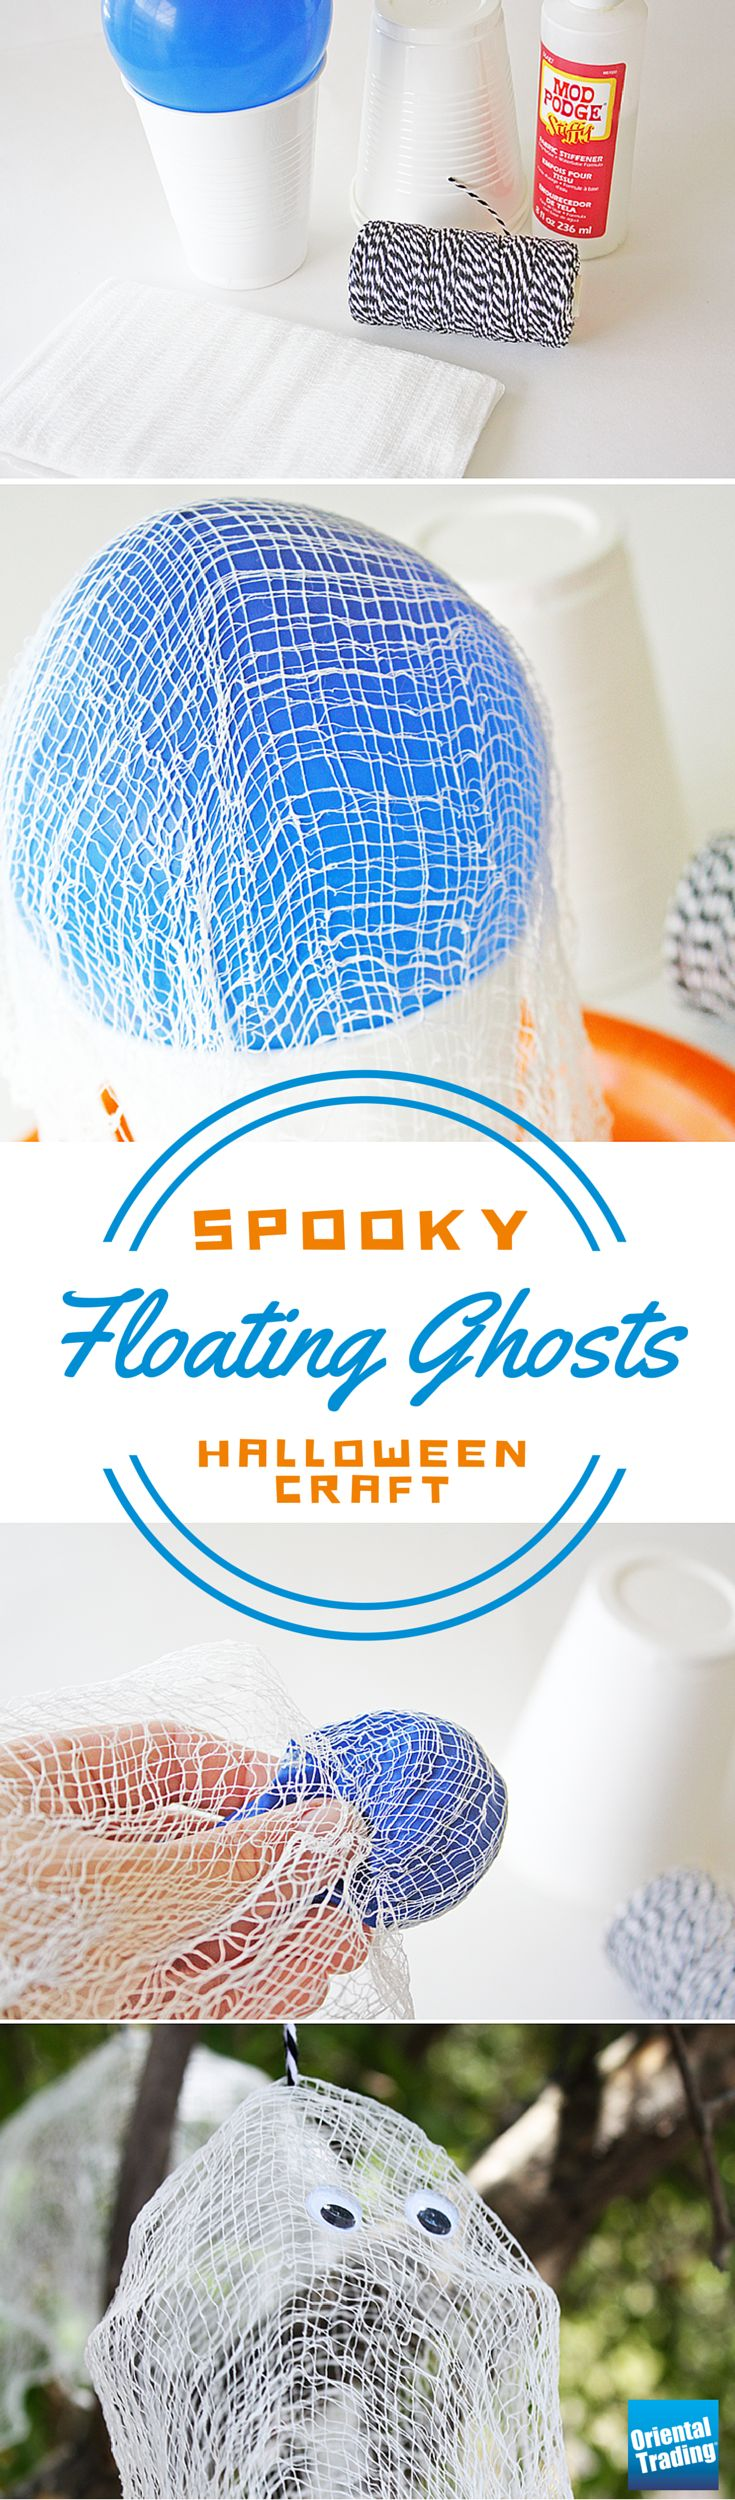 Make these spooky floating ghosts to add some fun to your Halloween decor! Floating ghosts look great hanging from trees outdoors or even placed on your fireplace mantel. Light them up with a glow stick or a tea light candle to give them an eerie glow.